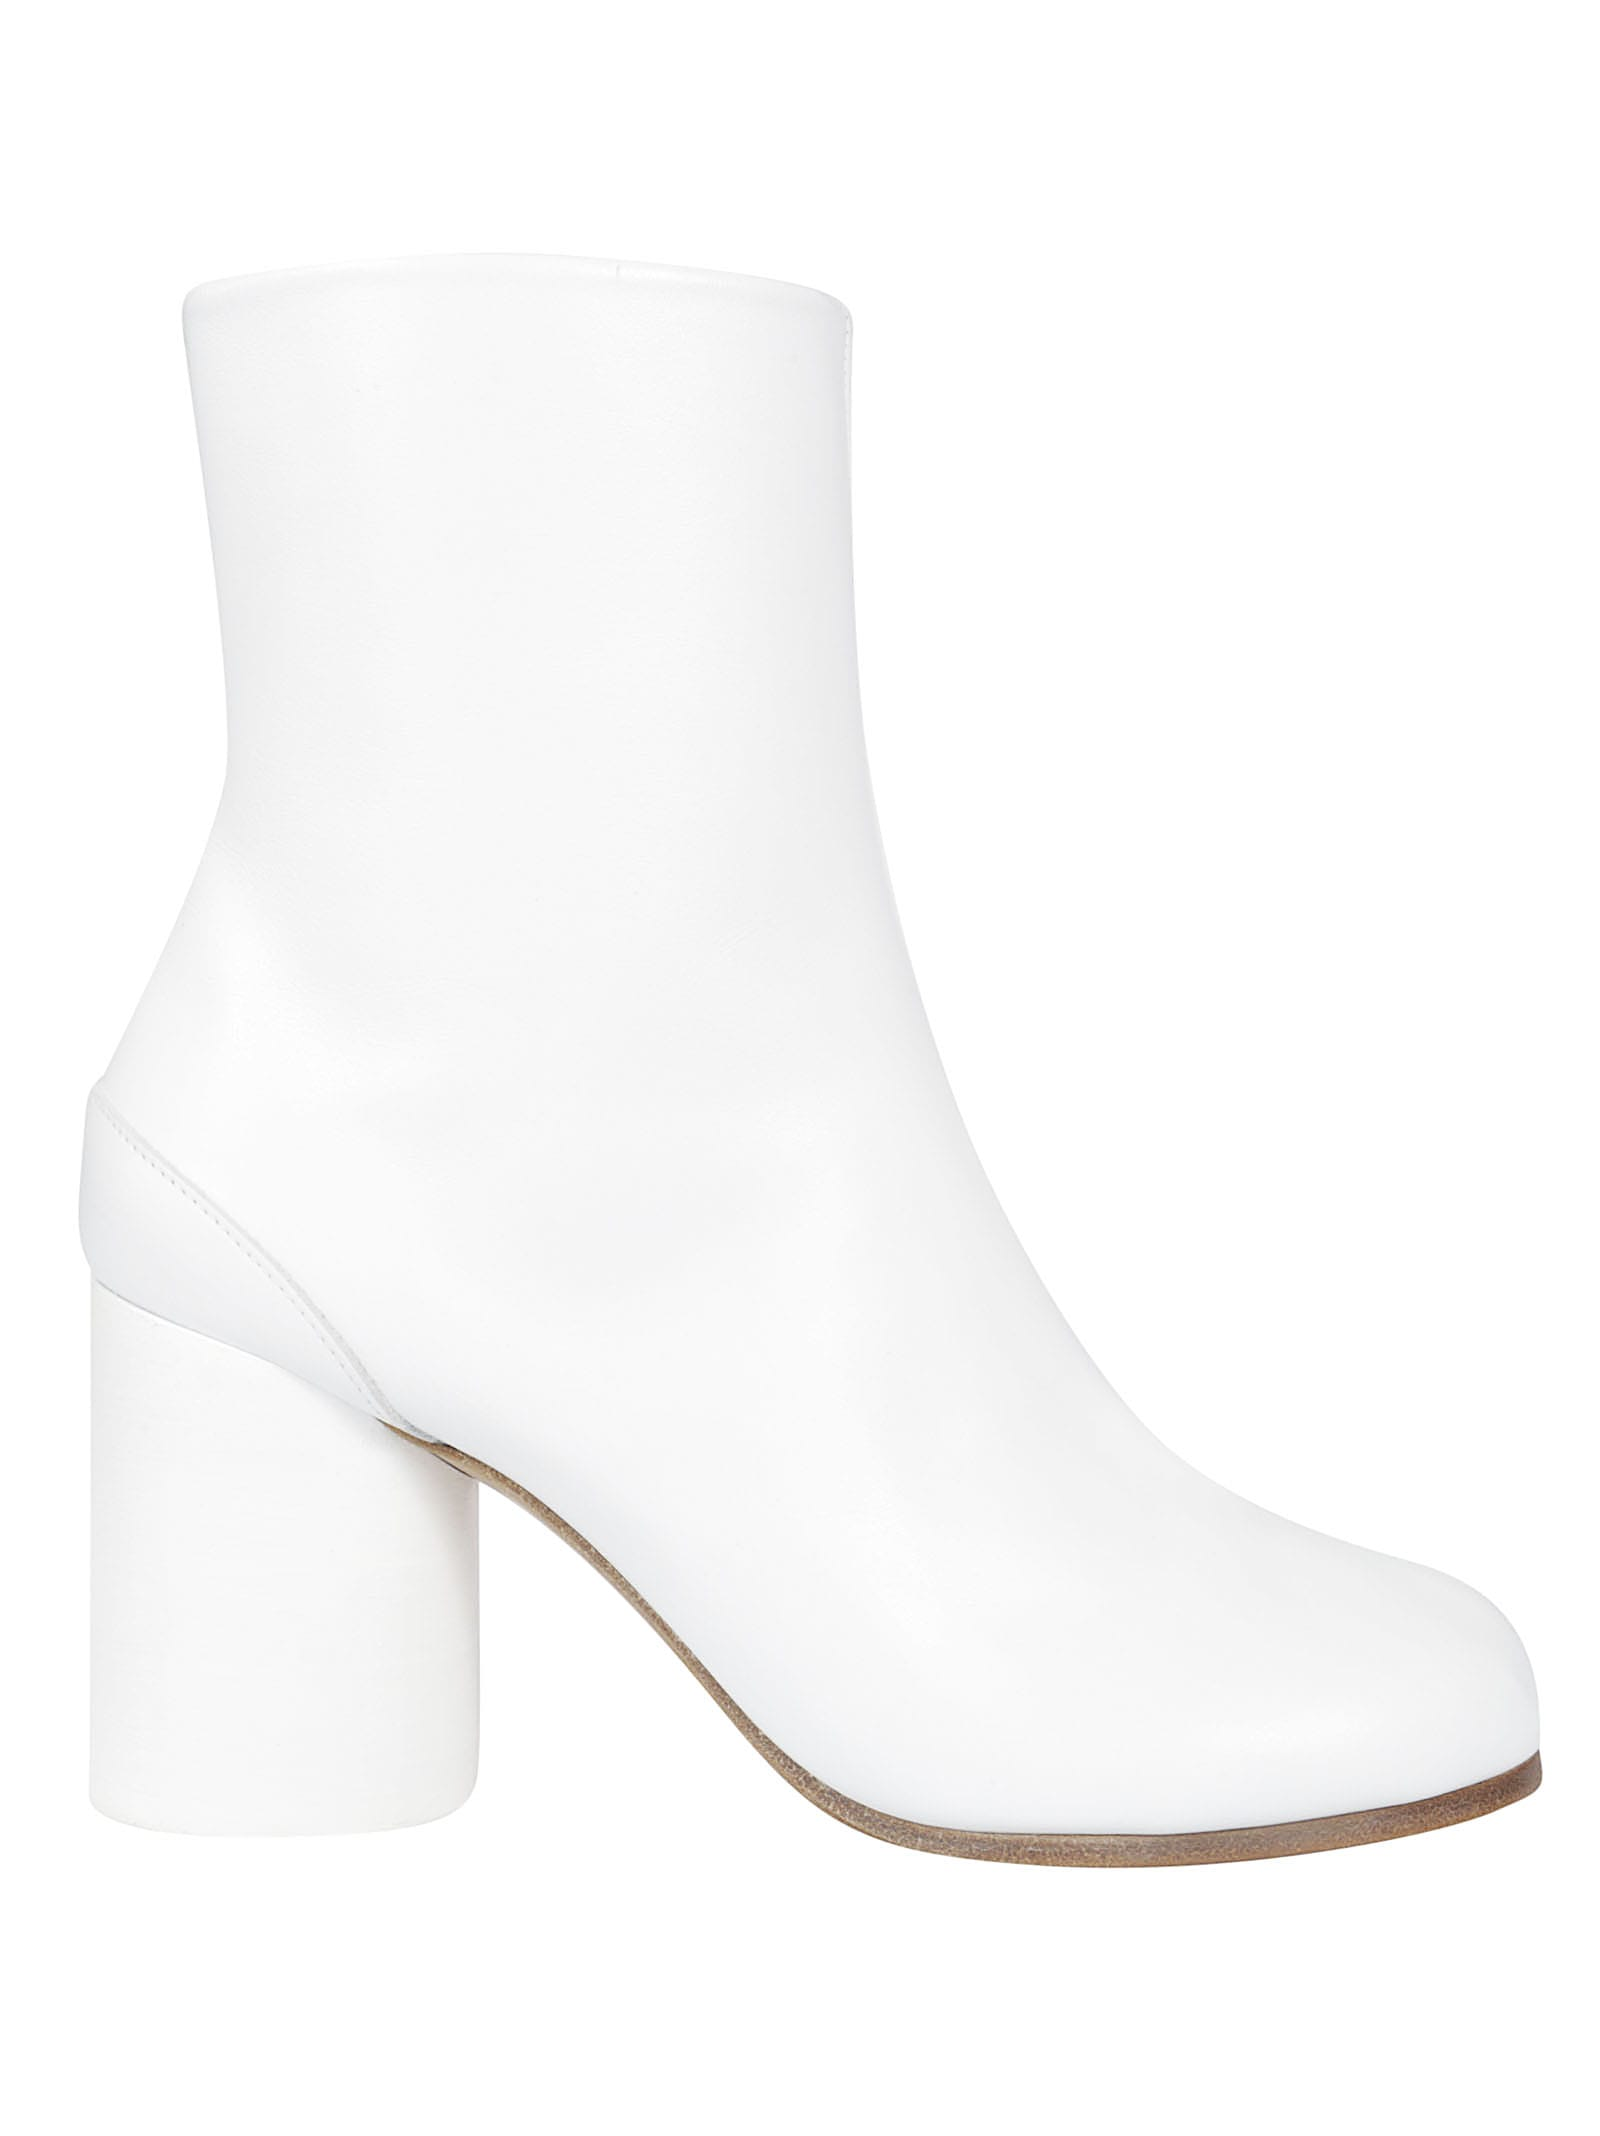 100% top quality great look new images of Maison Margiela Maison Margiela Tabi Ankle Boots - White ...